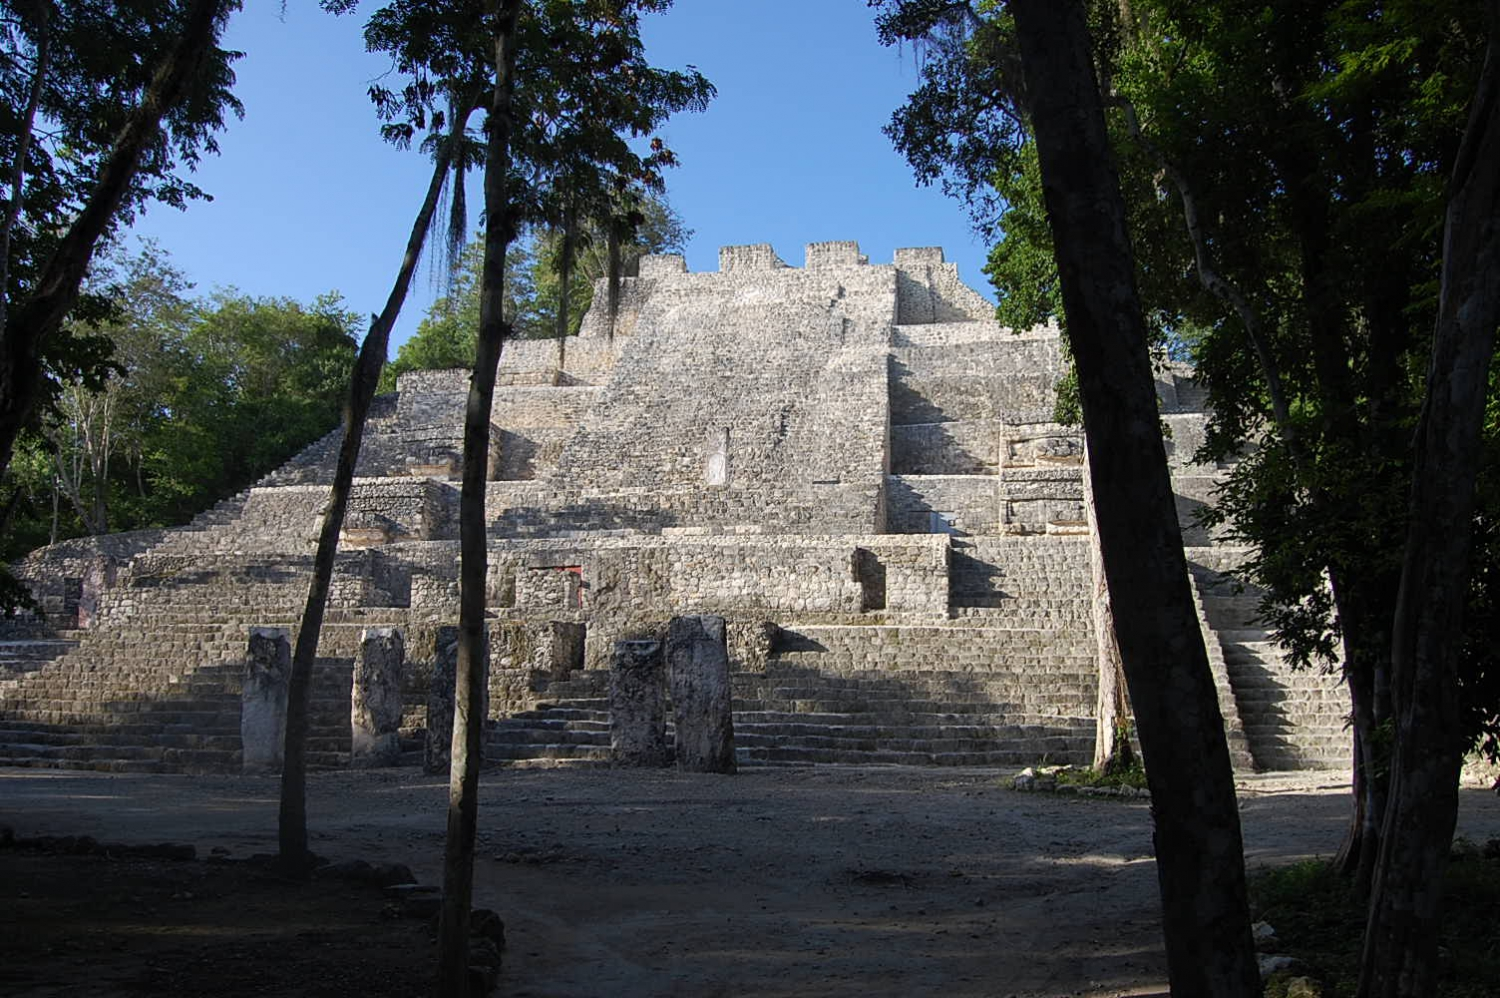 Super fun activities for kids in the Riviera Maya